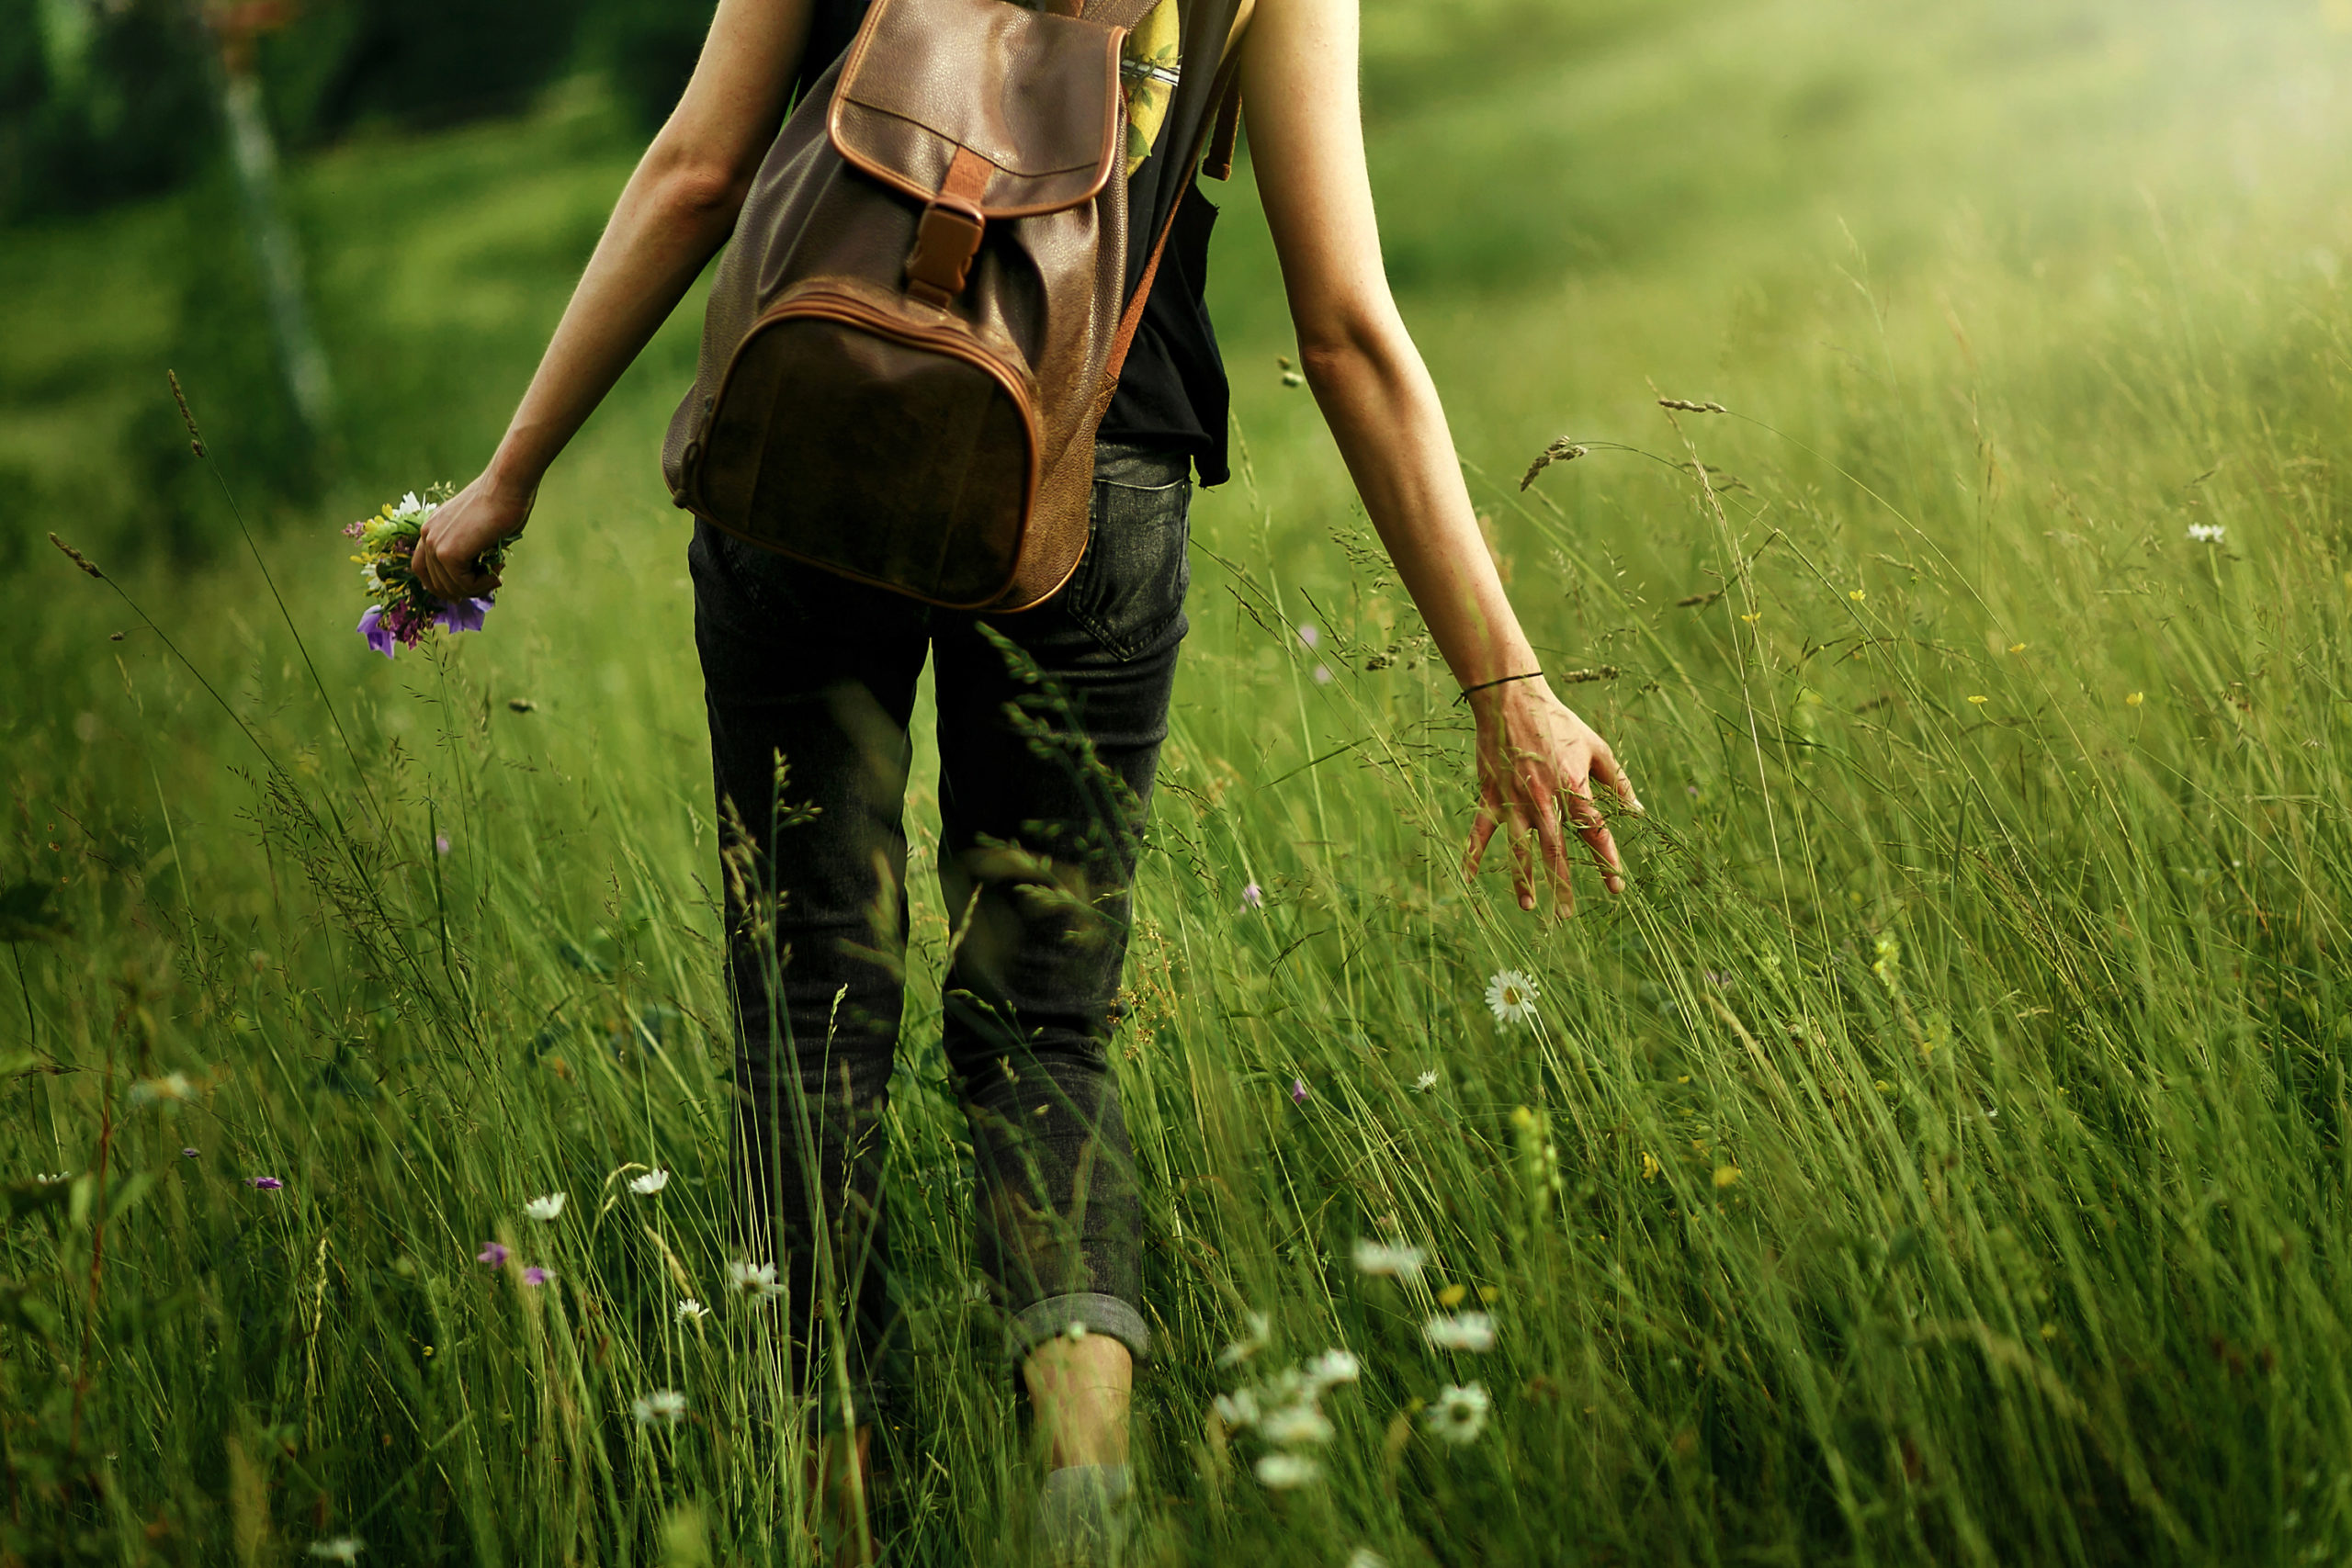 RxLeaf Naturals category represented by woman walking in field of grass